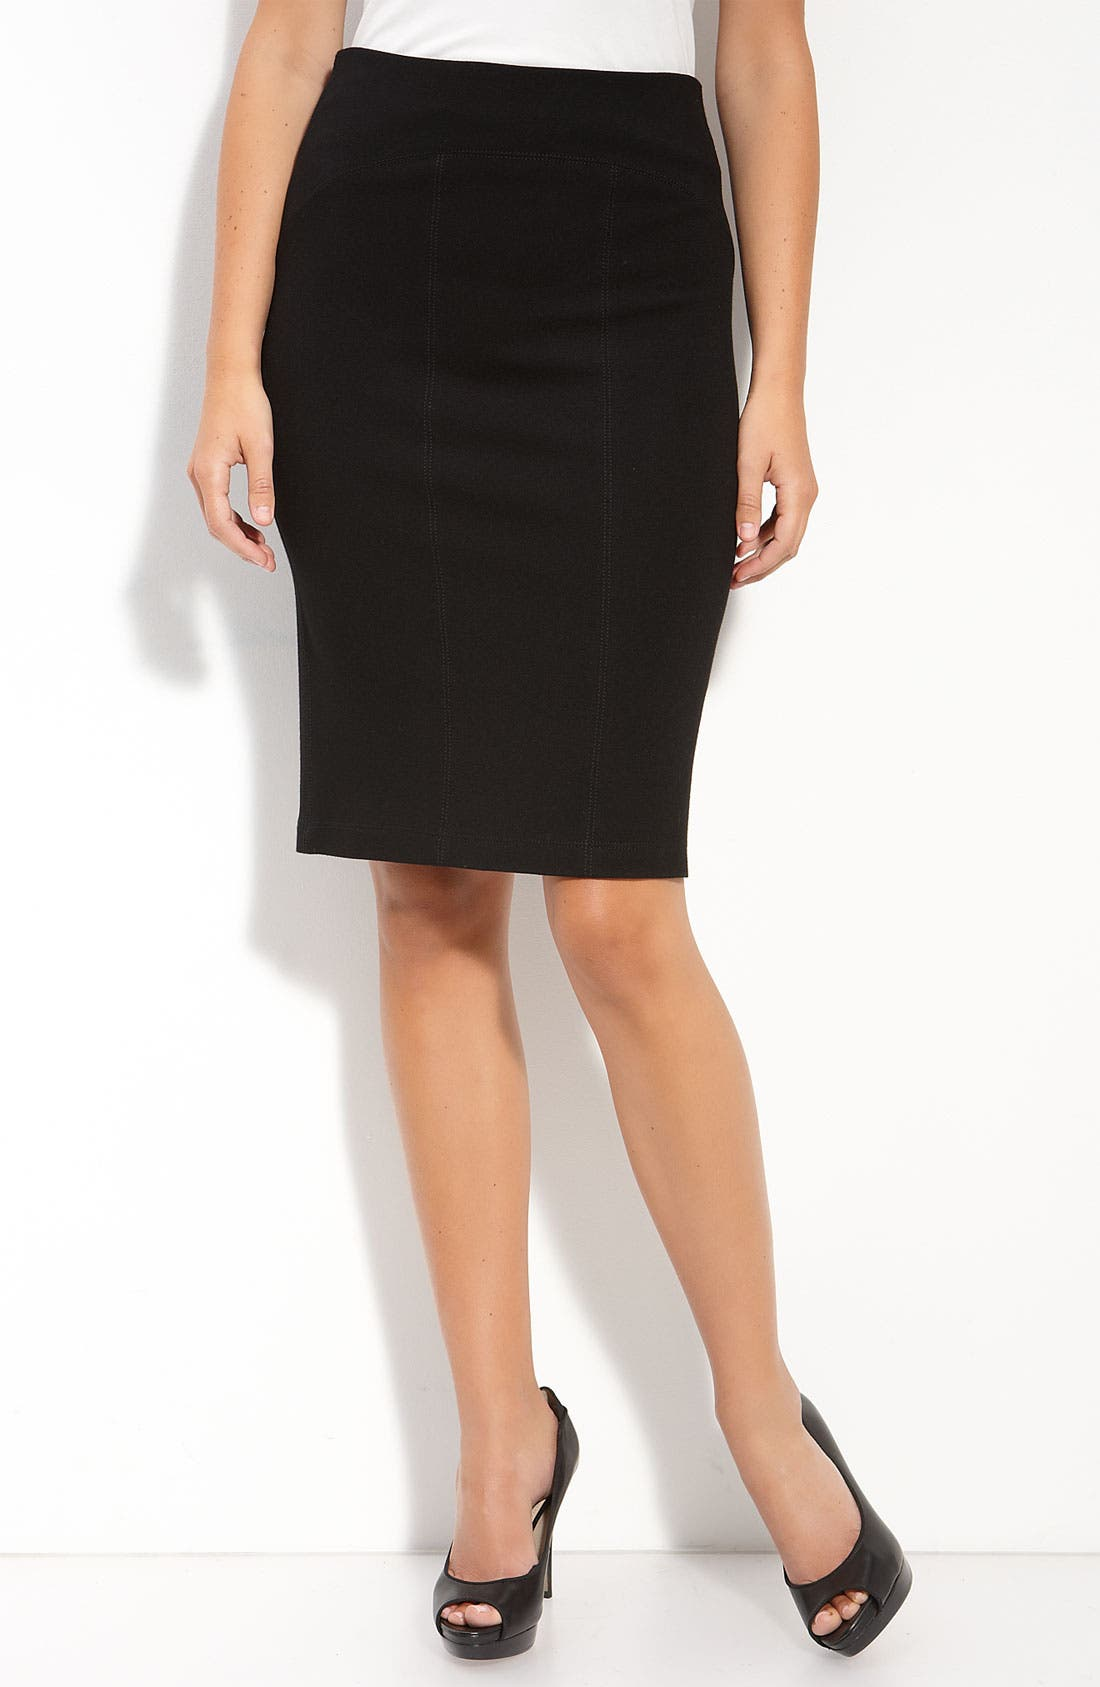 Alternate Image 1 Selected - Karen Kane Ponte Knit Pencil Skirt